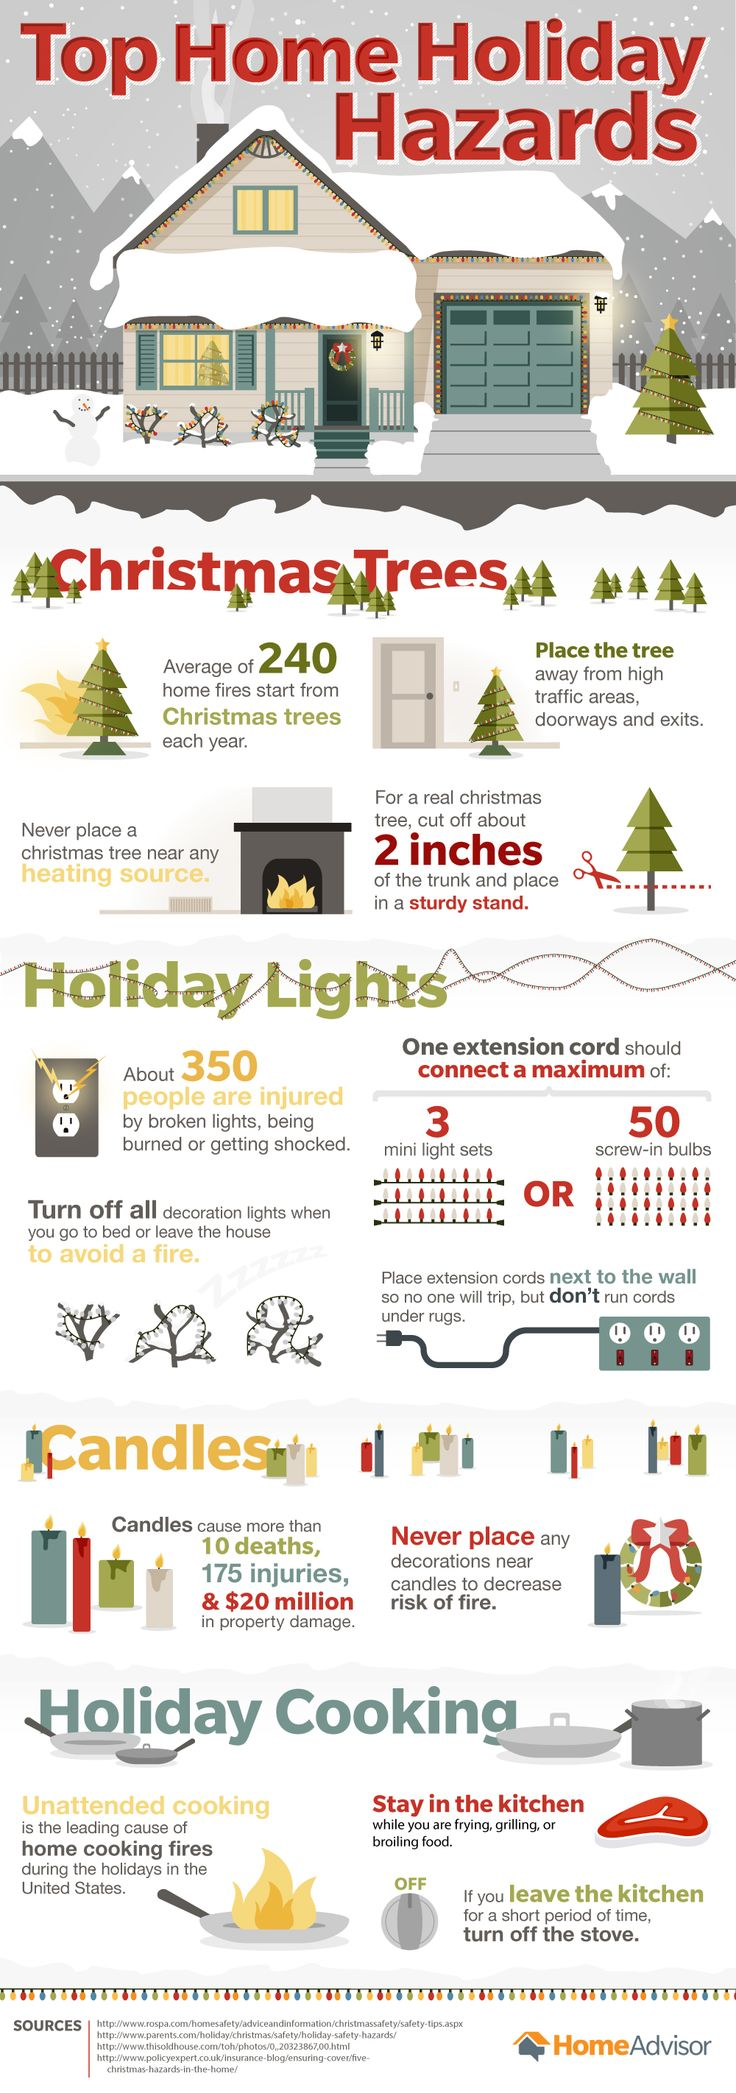 The holidays can be chaotic. Here's how to prevent common #holiday accidents. #safety